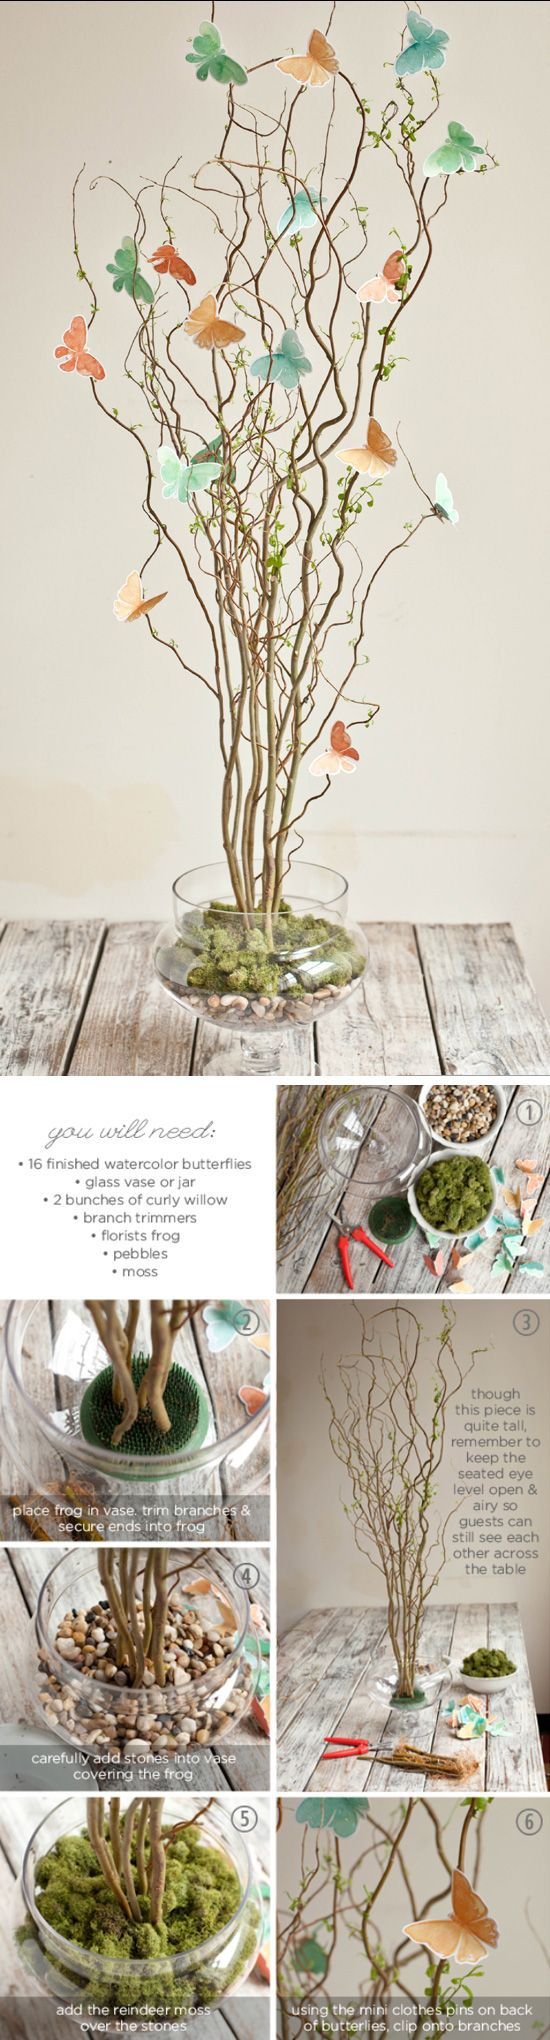 Twig & Butterfly Centerpiece Tutorial | Click Pic for 24 DIY Spring Wedding Ideas on a Budget | DIY Spring Wedding Centerpieces Ideas